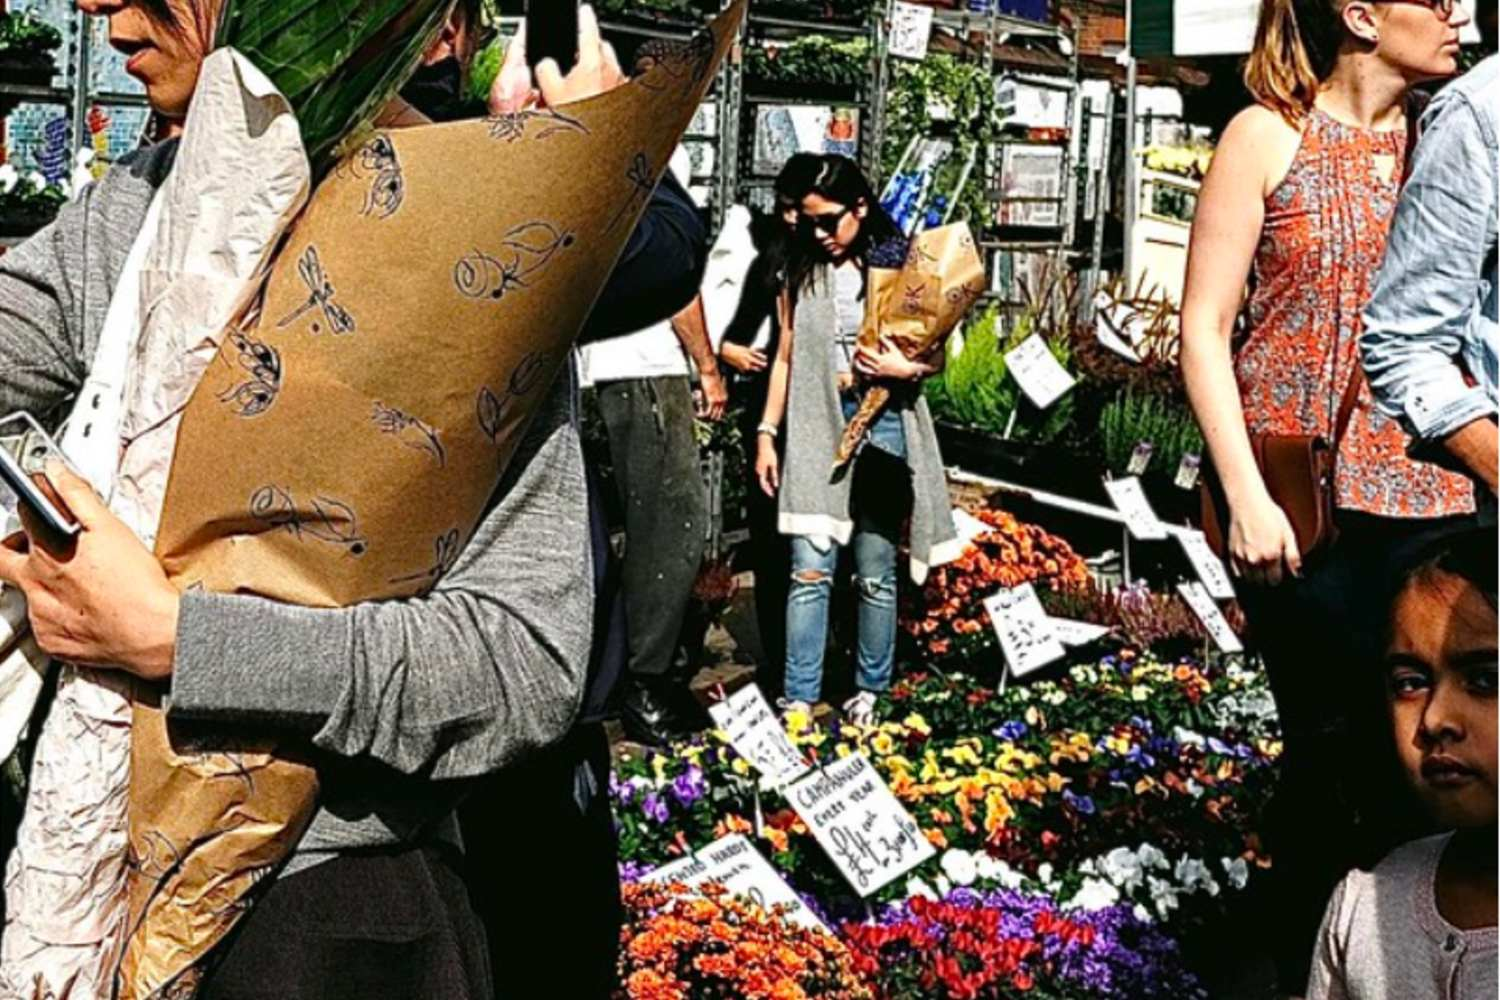 A woman surrounded by flowers at Columbia Road Market